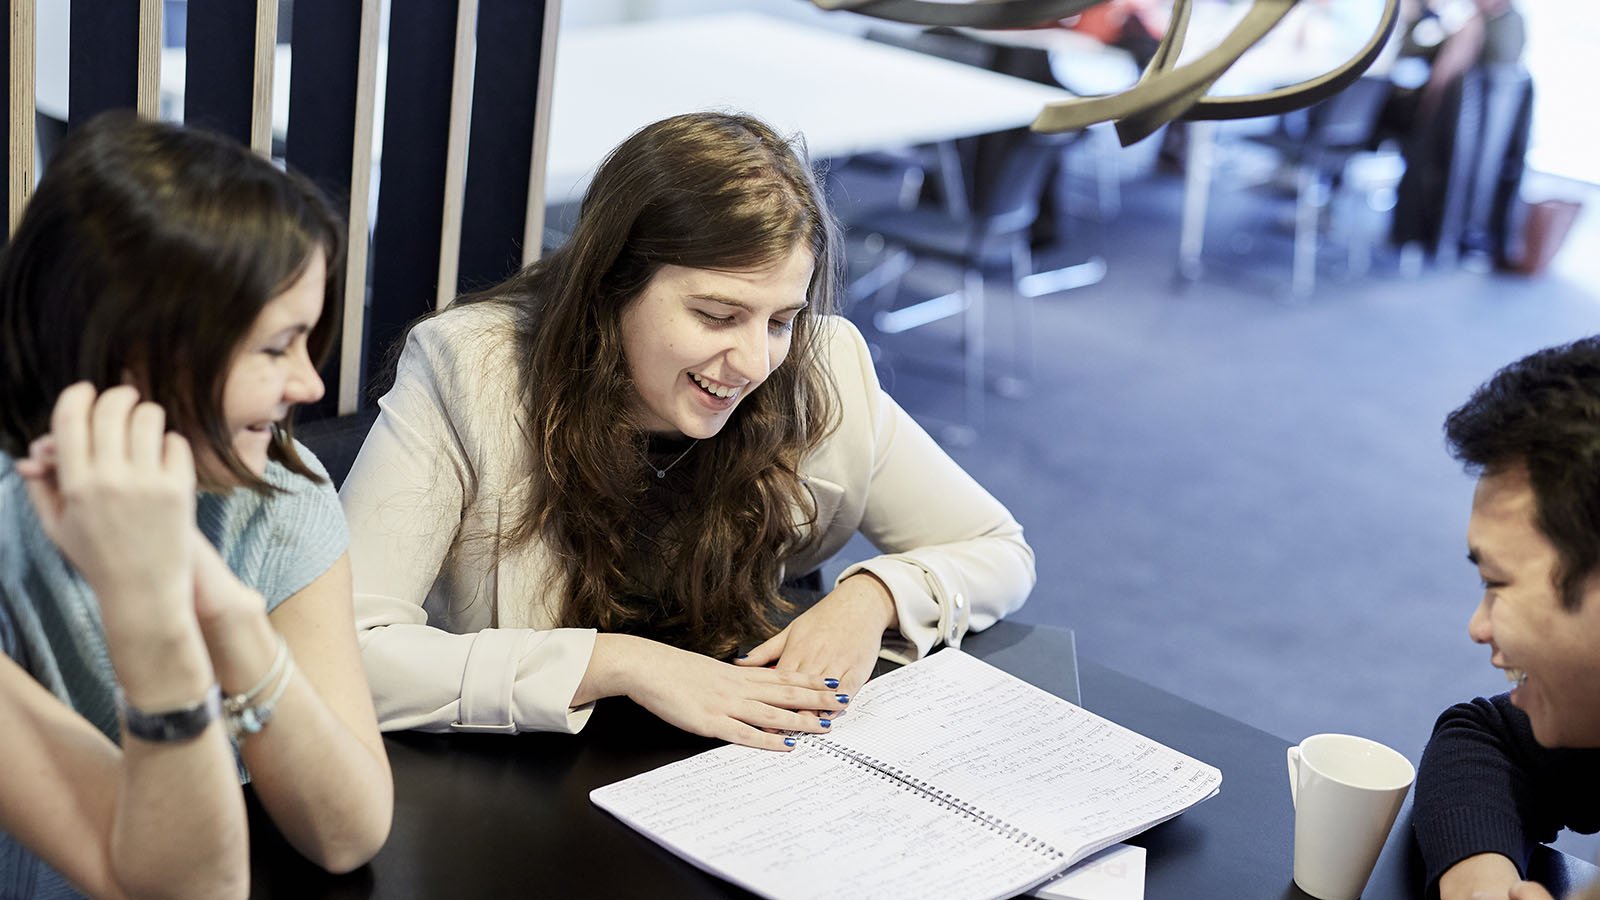 Postgraduate university students work in communal study area at GradPad London